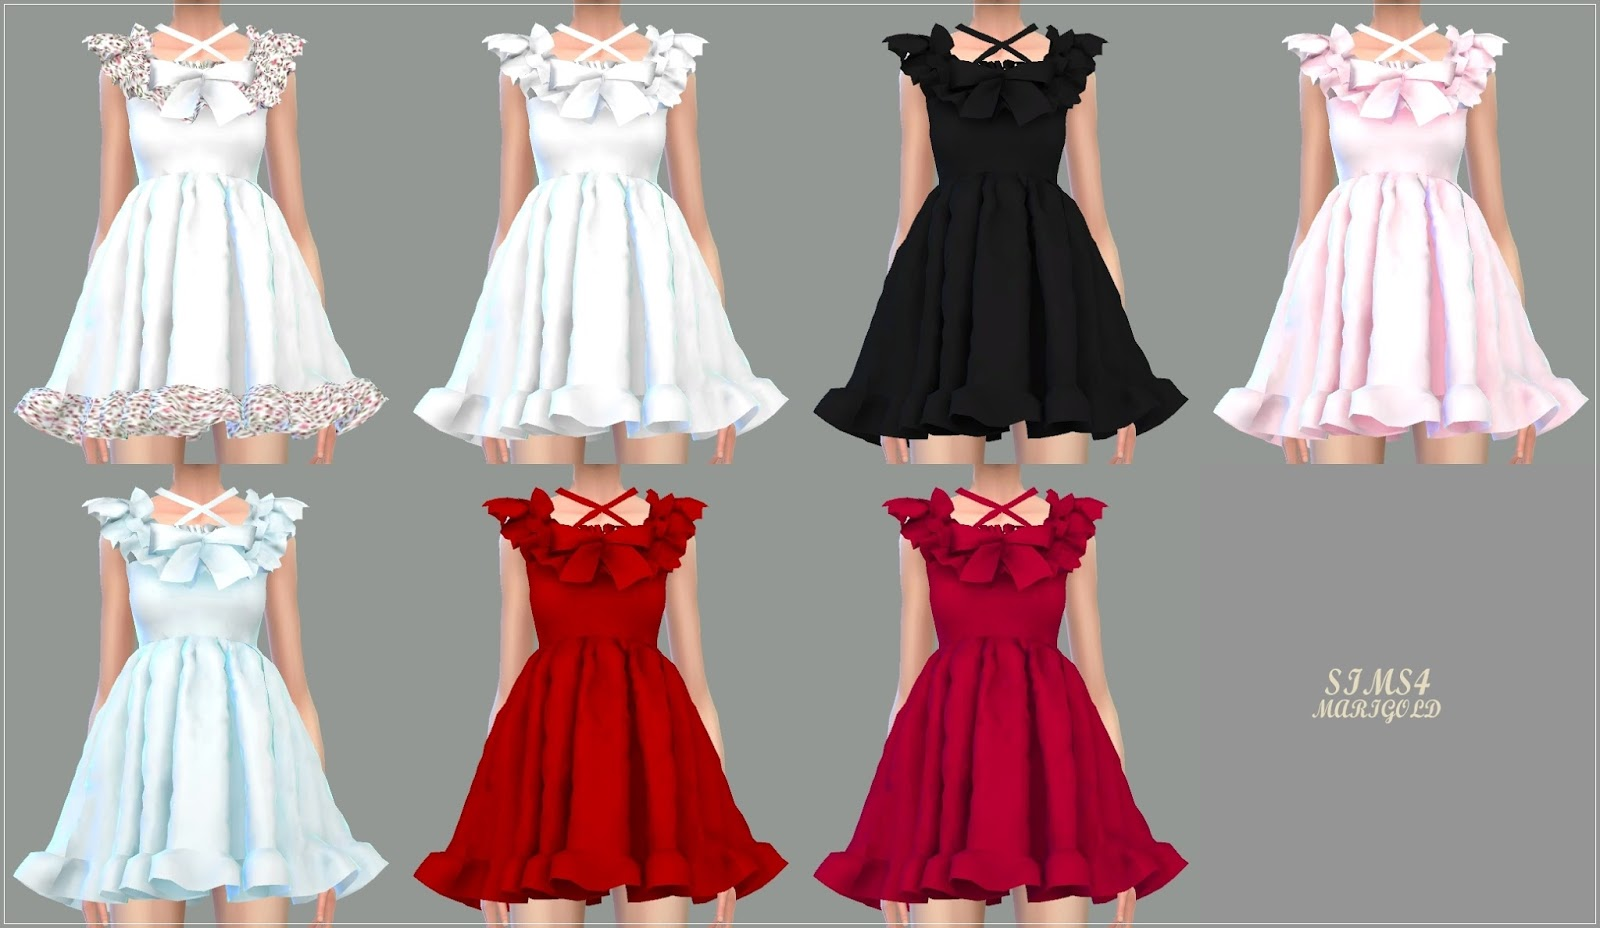 Frill Bonnet & Pure Doll Dress by marigold